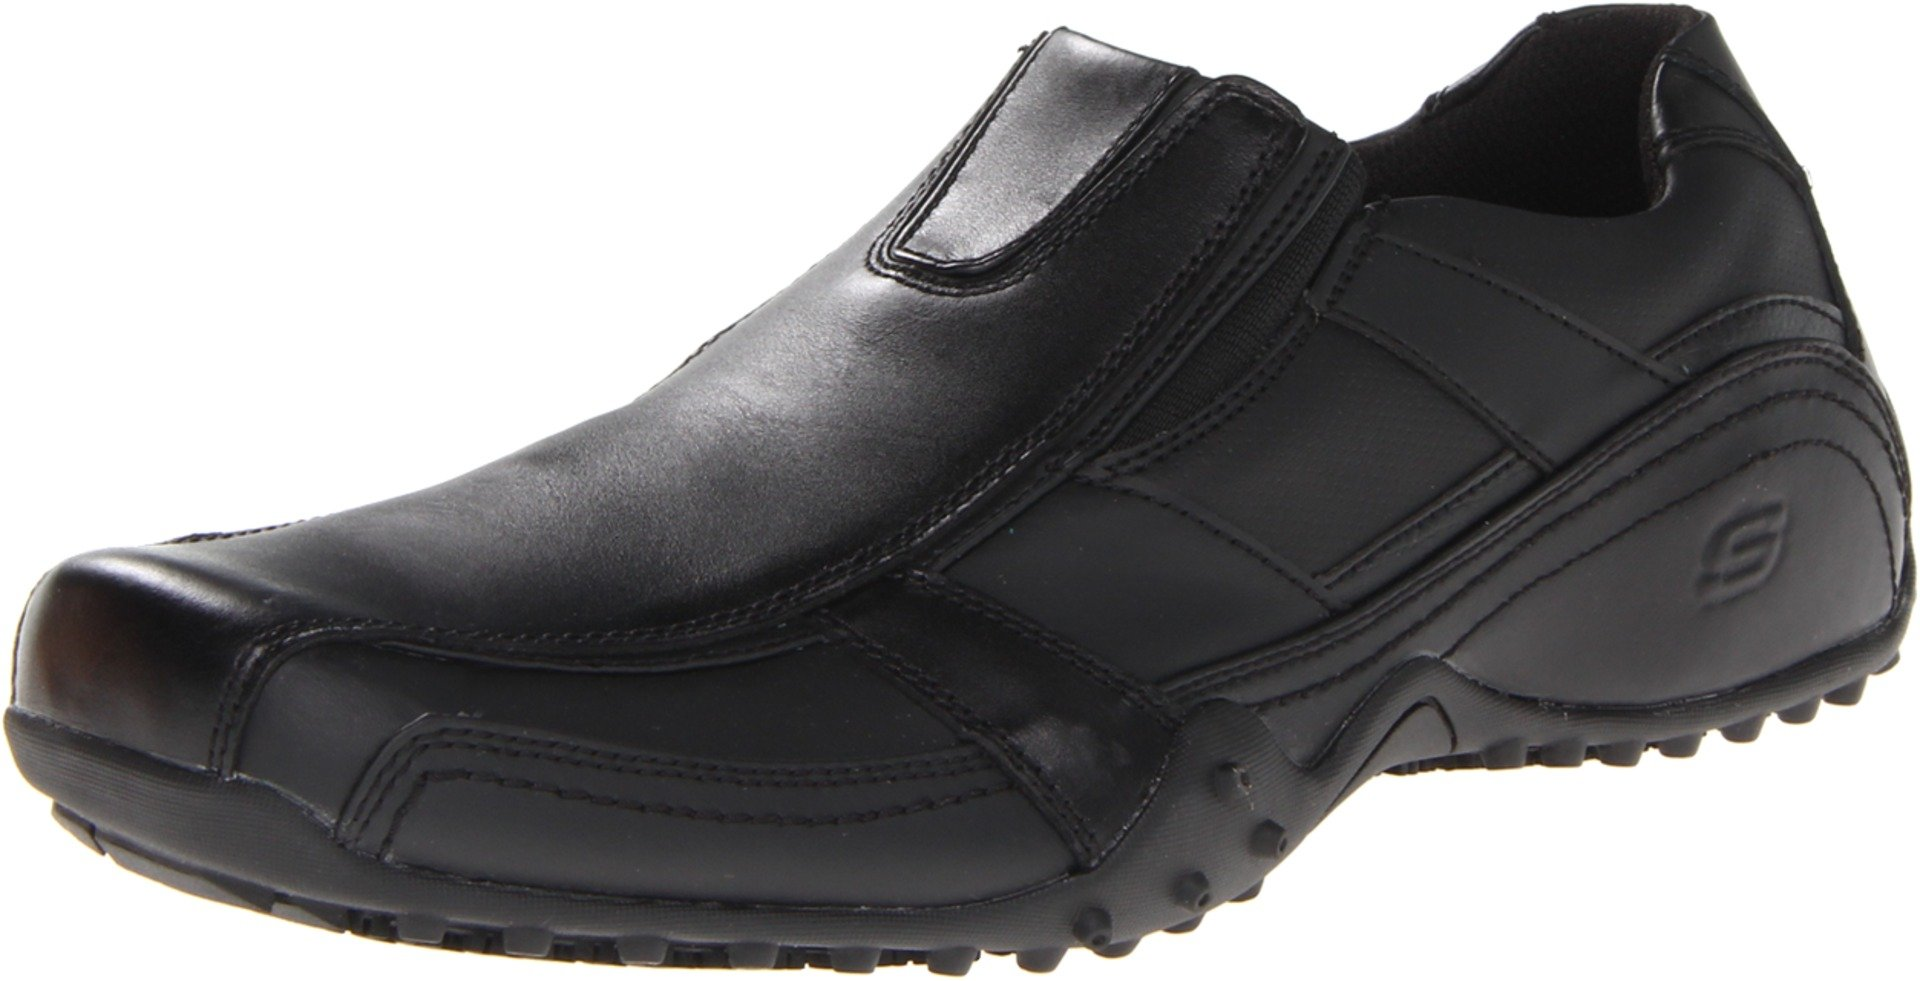 Skechers for Work Men's Rockland-Hooper Work Boot, Black/Graphite, 10 M US by Skechers